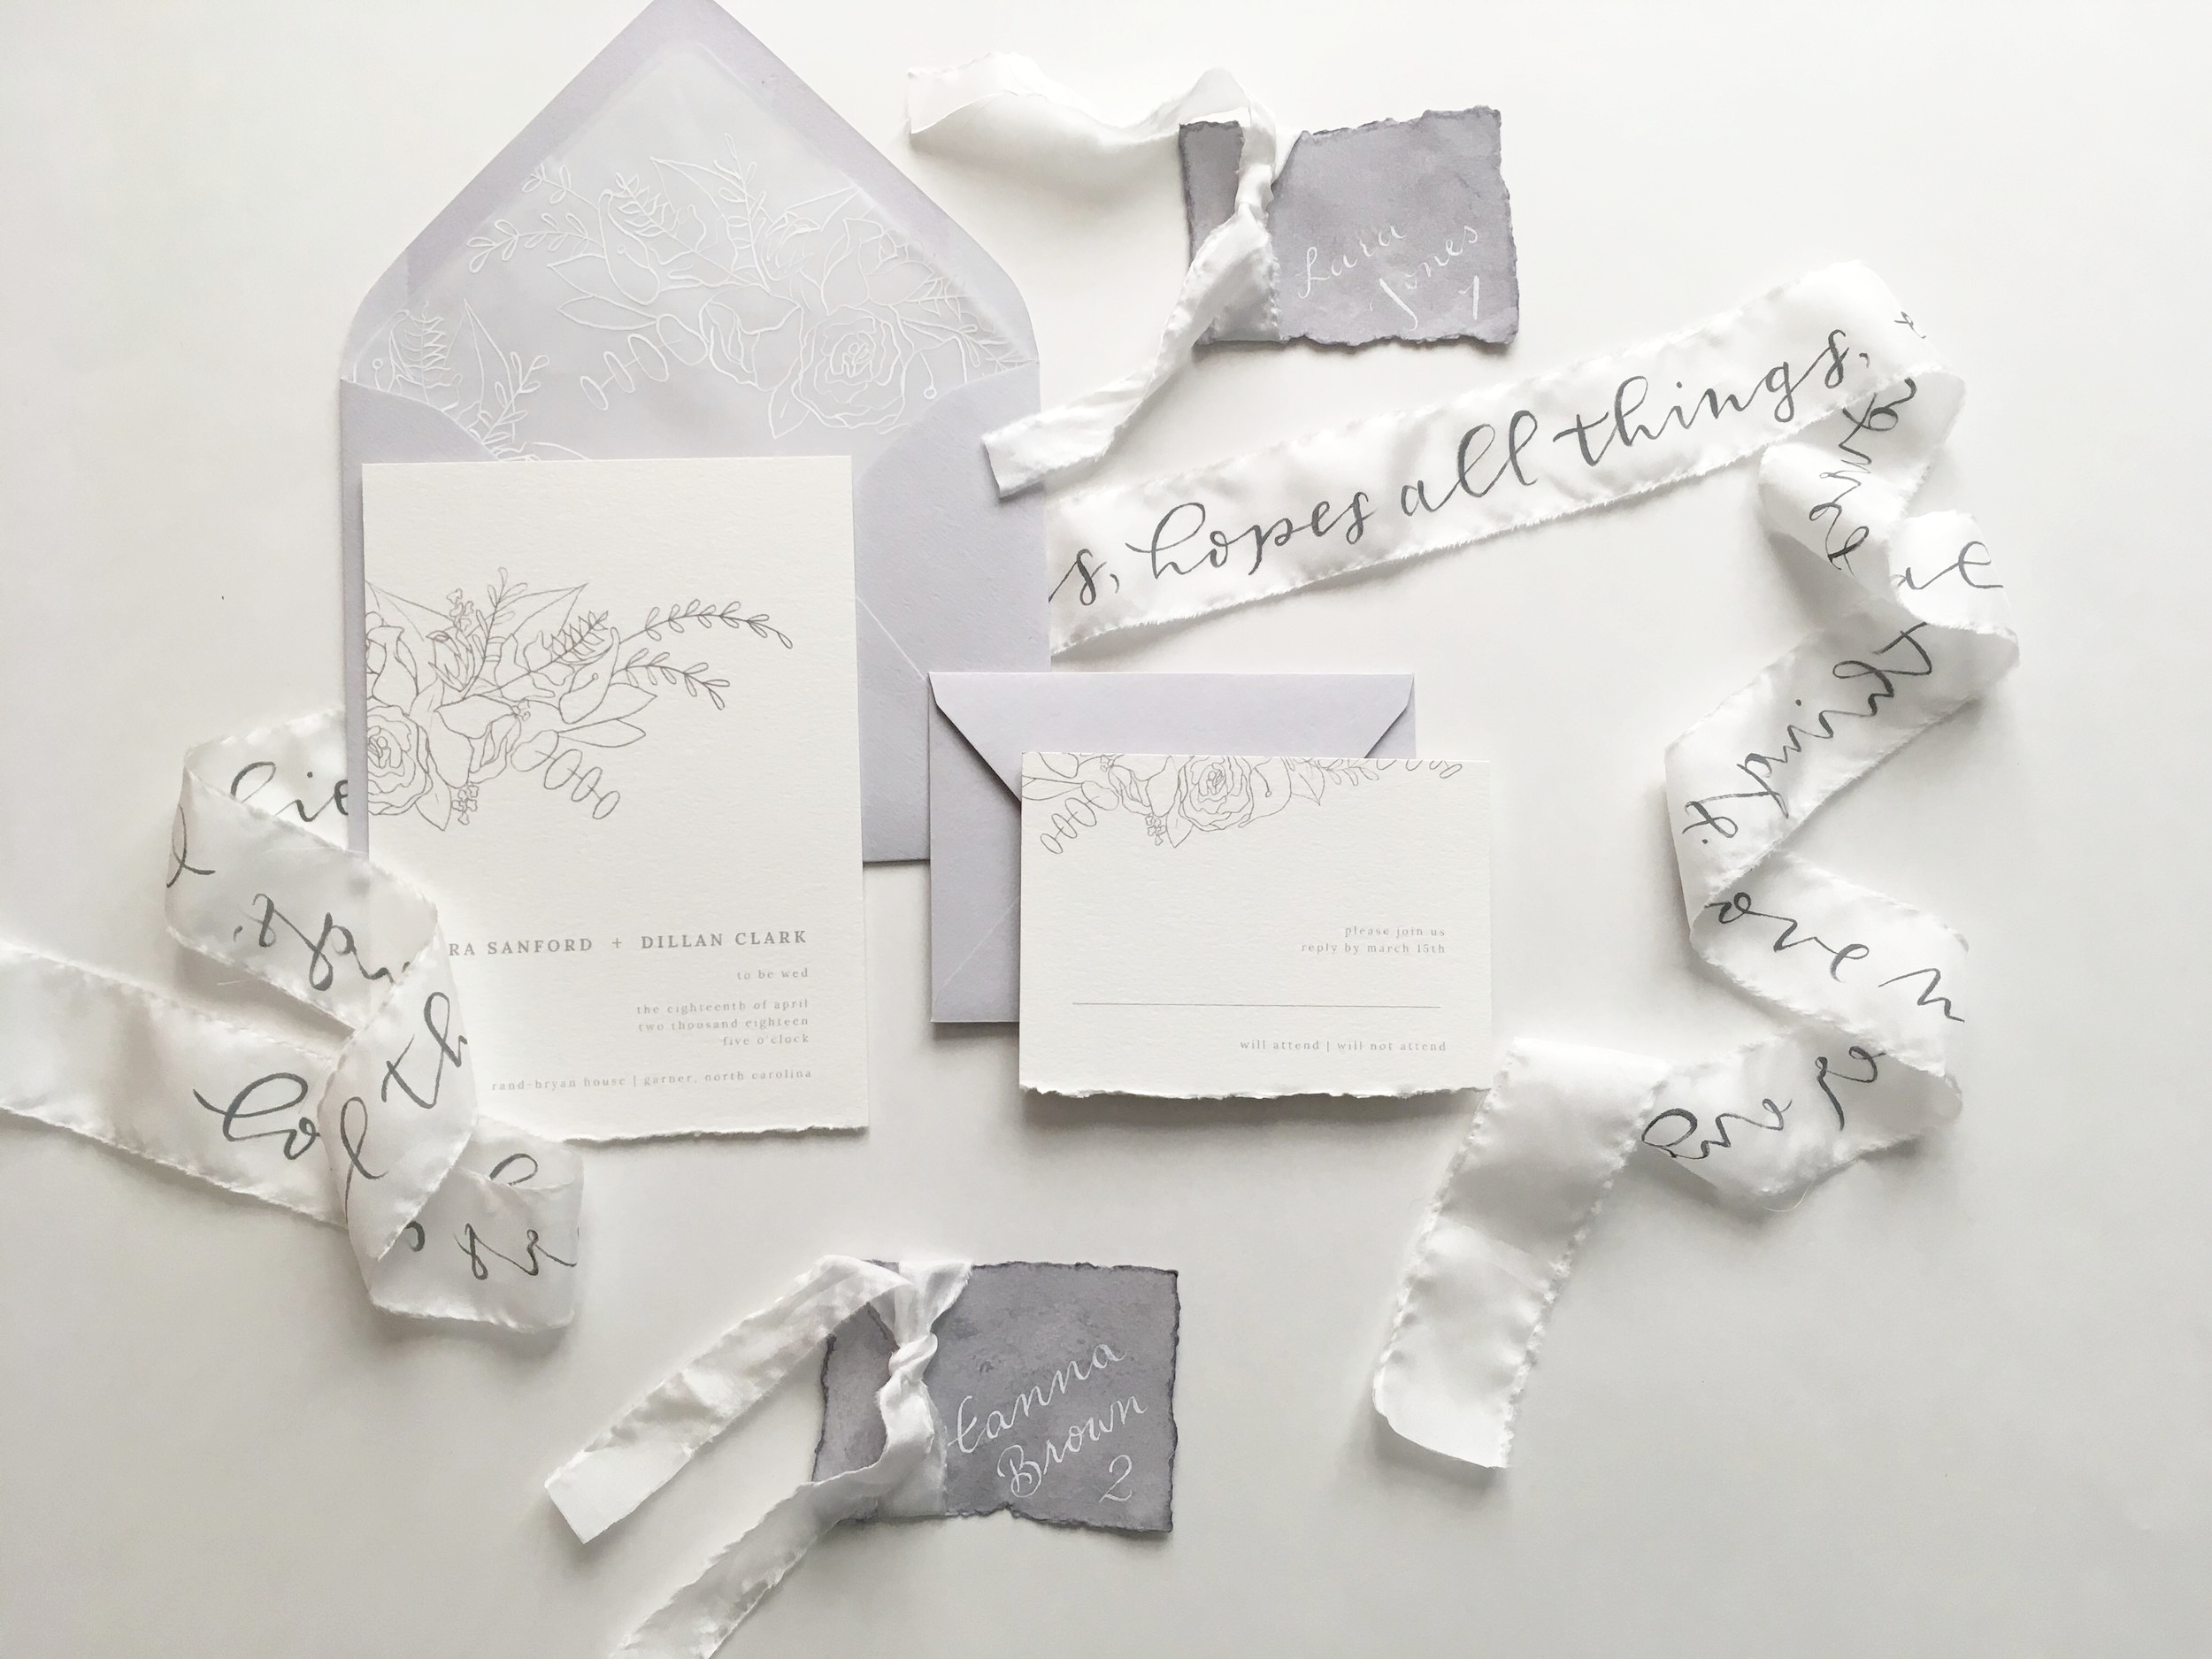 Invitation Suite by Raleigh Calligraphy & Design